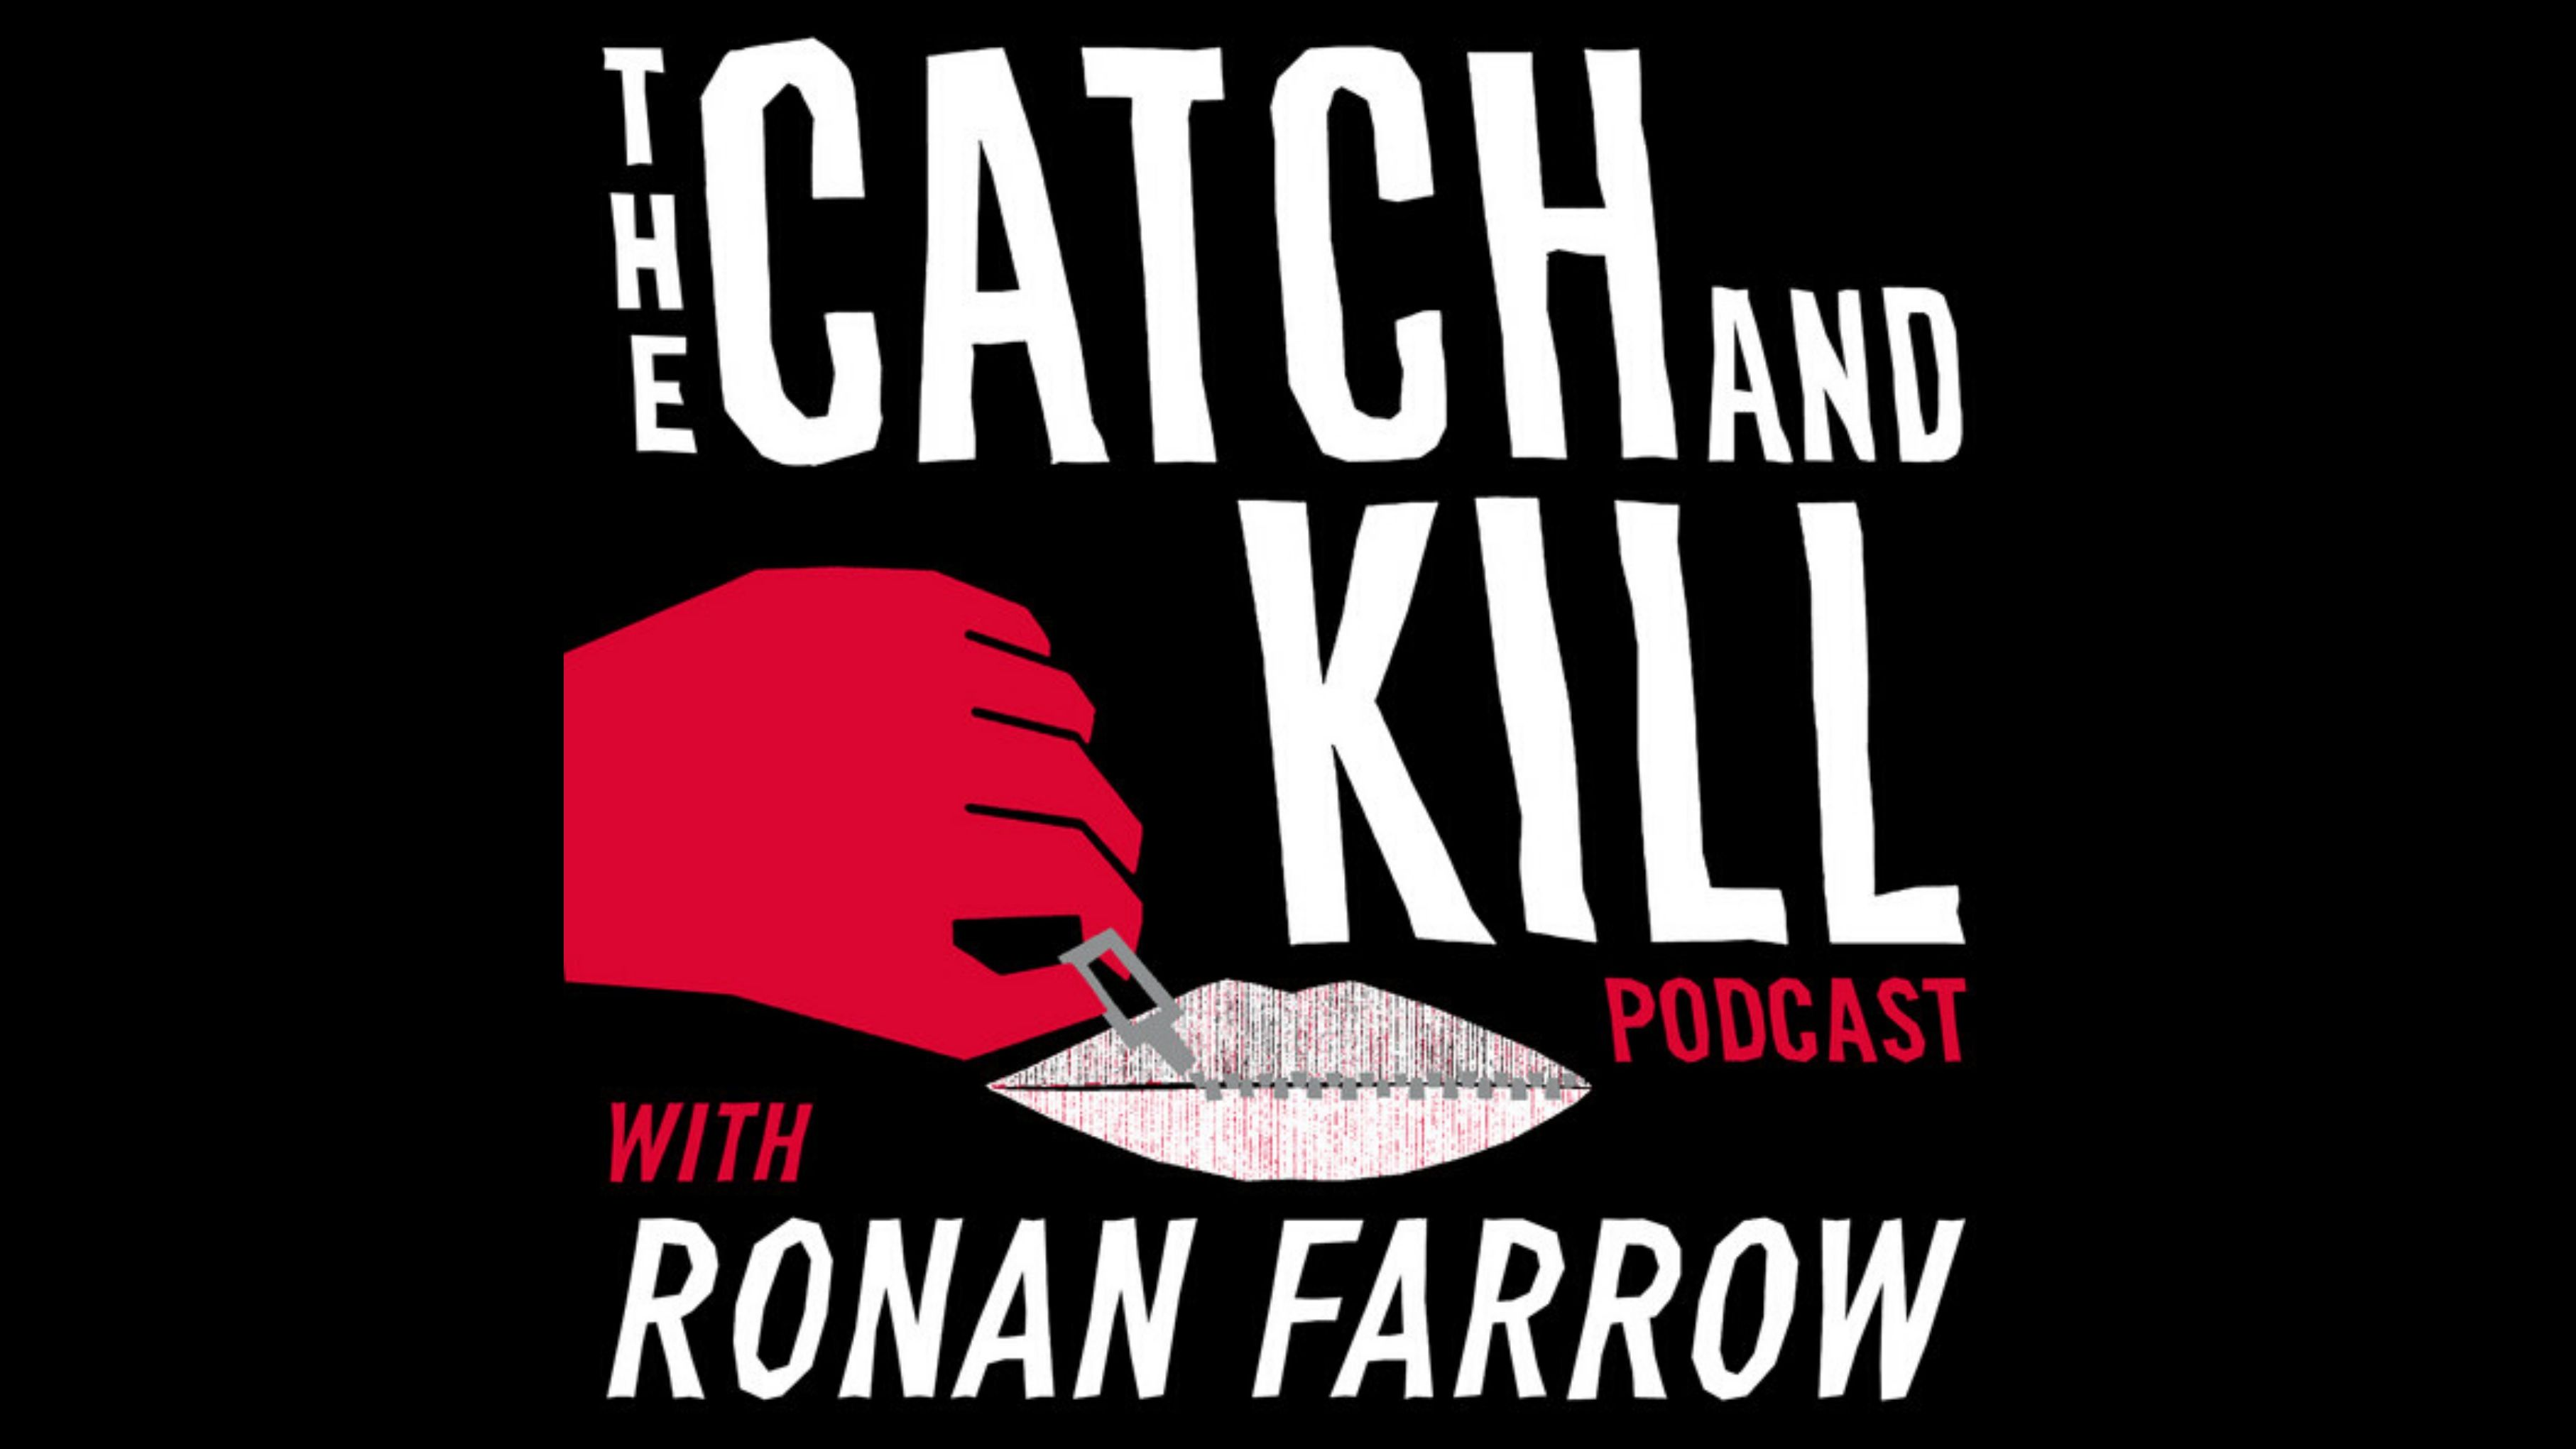 Podcast-koukutus: The Catch and Kill Podcast